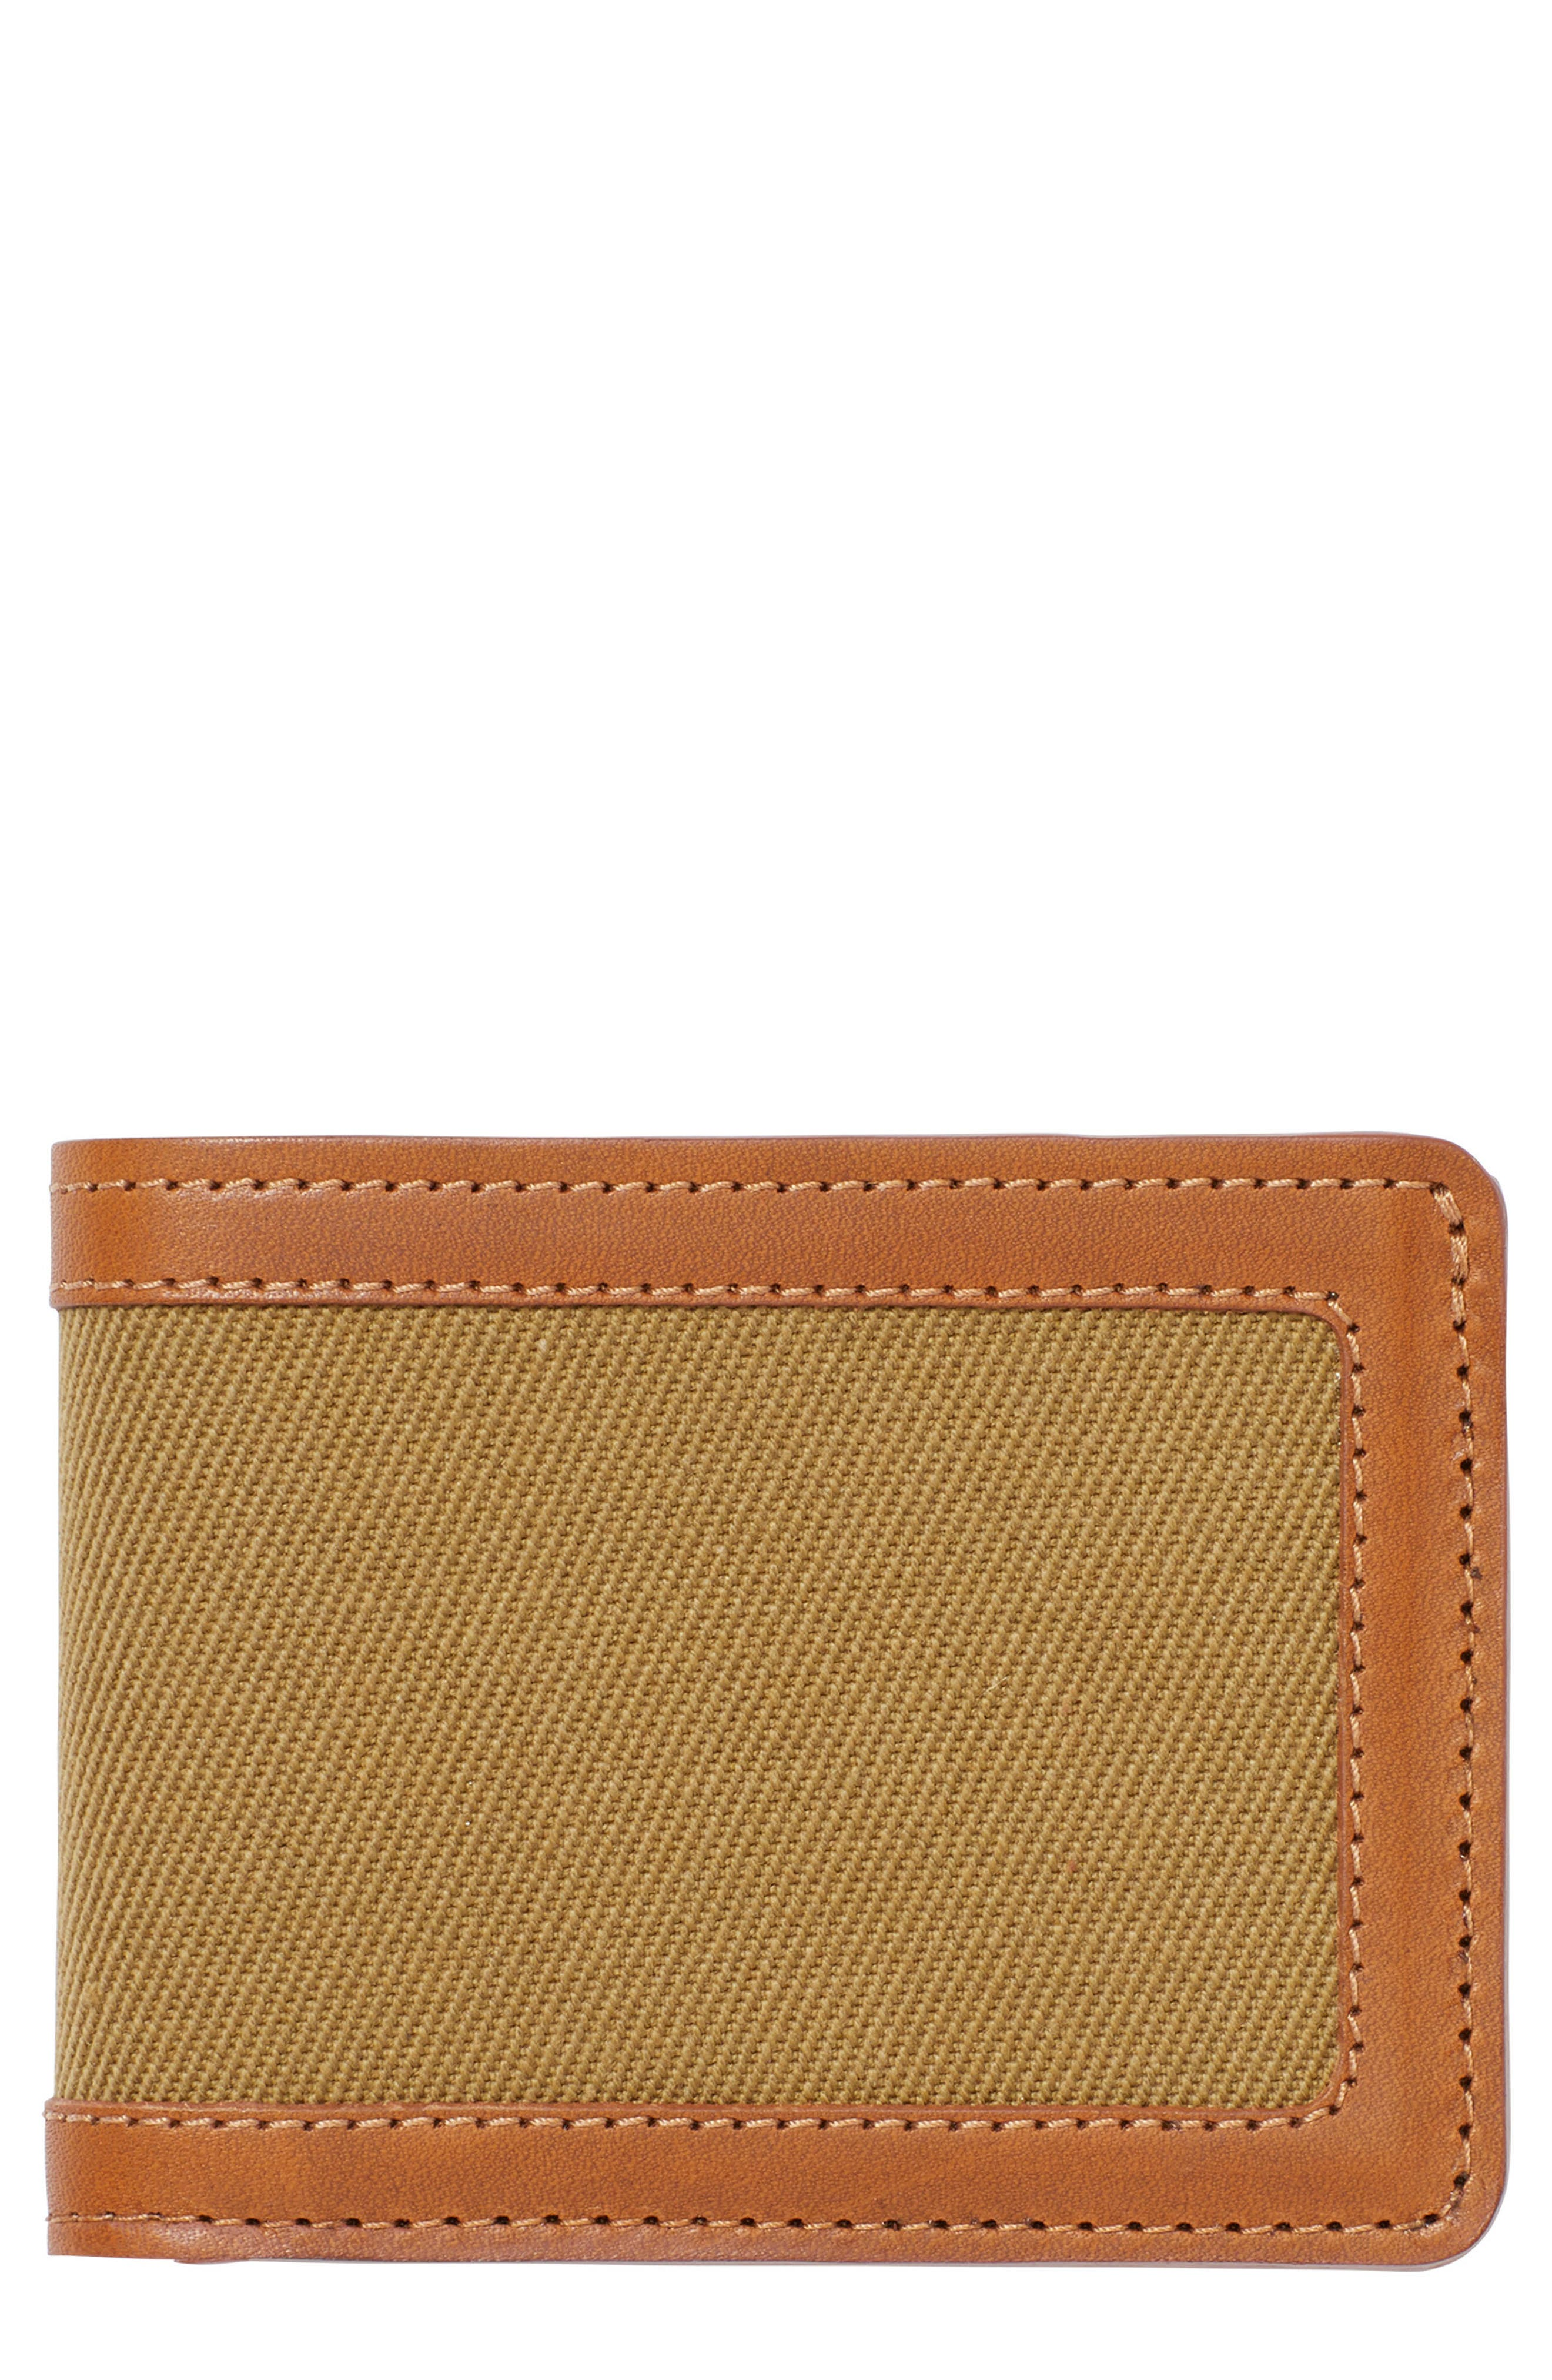 Outfitter Leather & Canvas Bifold Wallet,                         Main,                         color, TAN